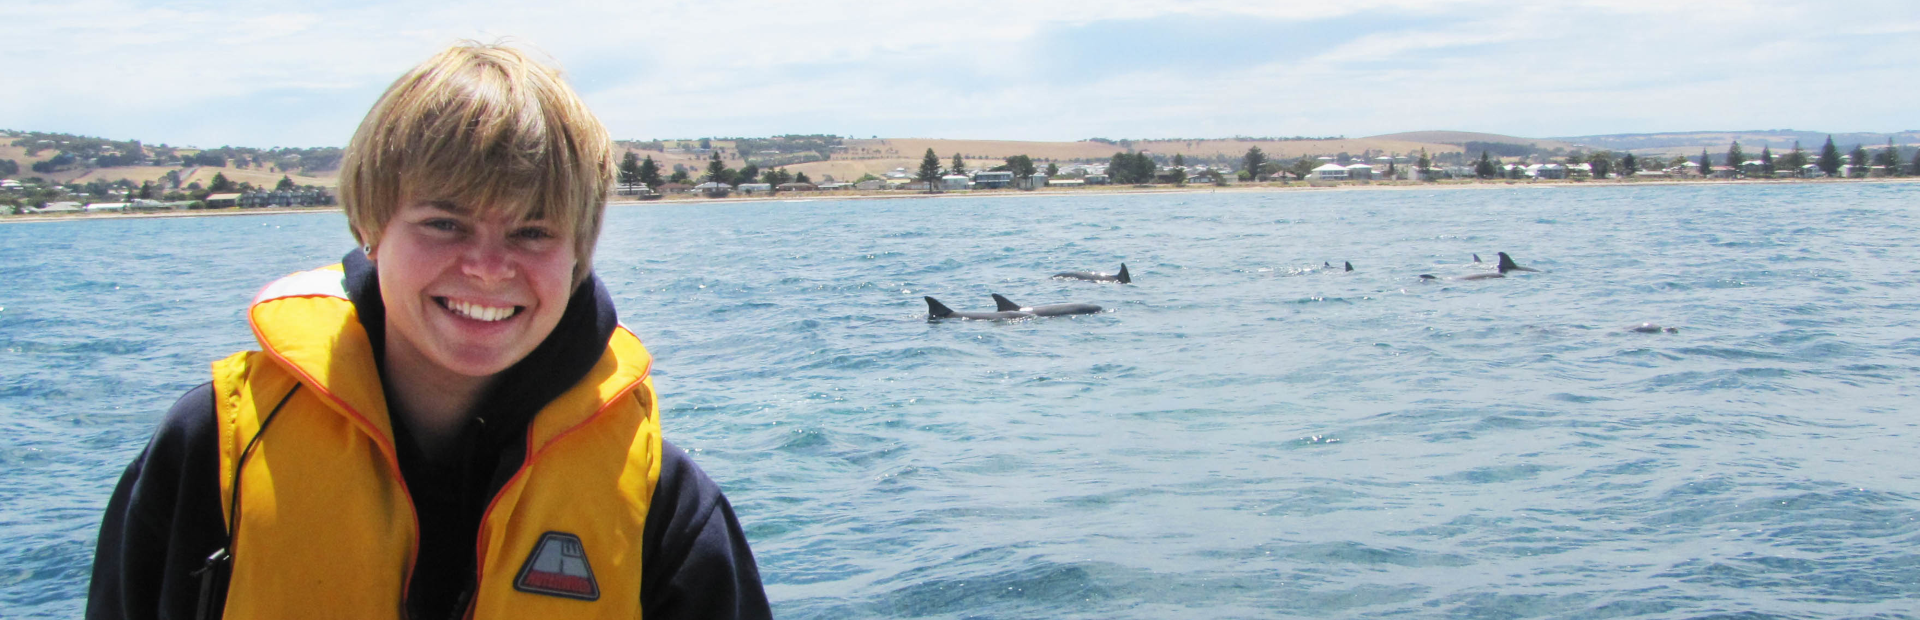 Victor Harbor High School Public South Australia Australia Student Trip